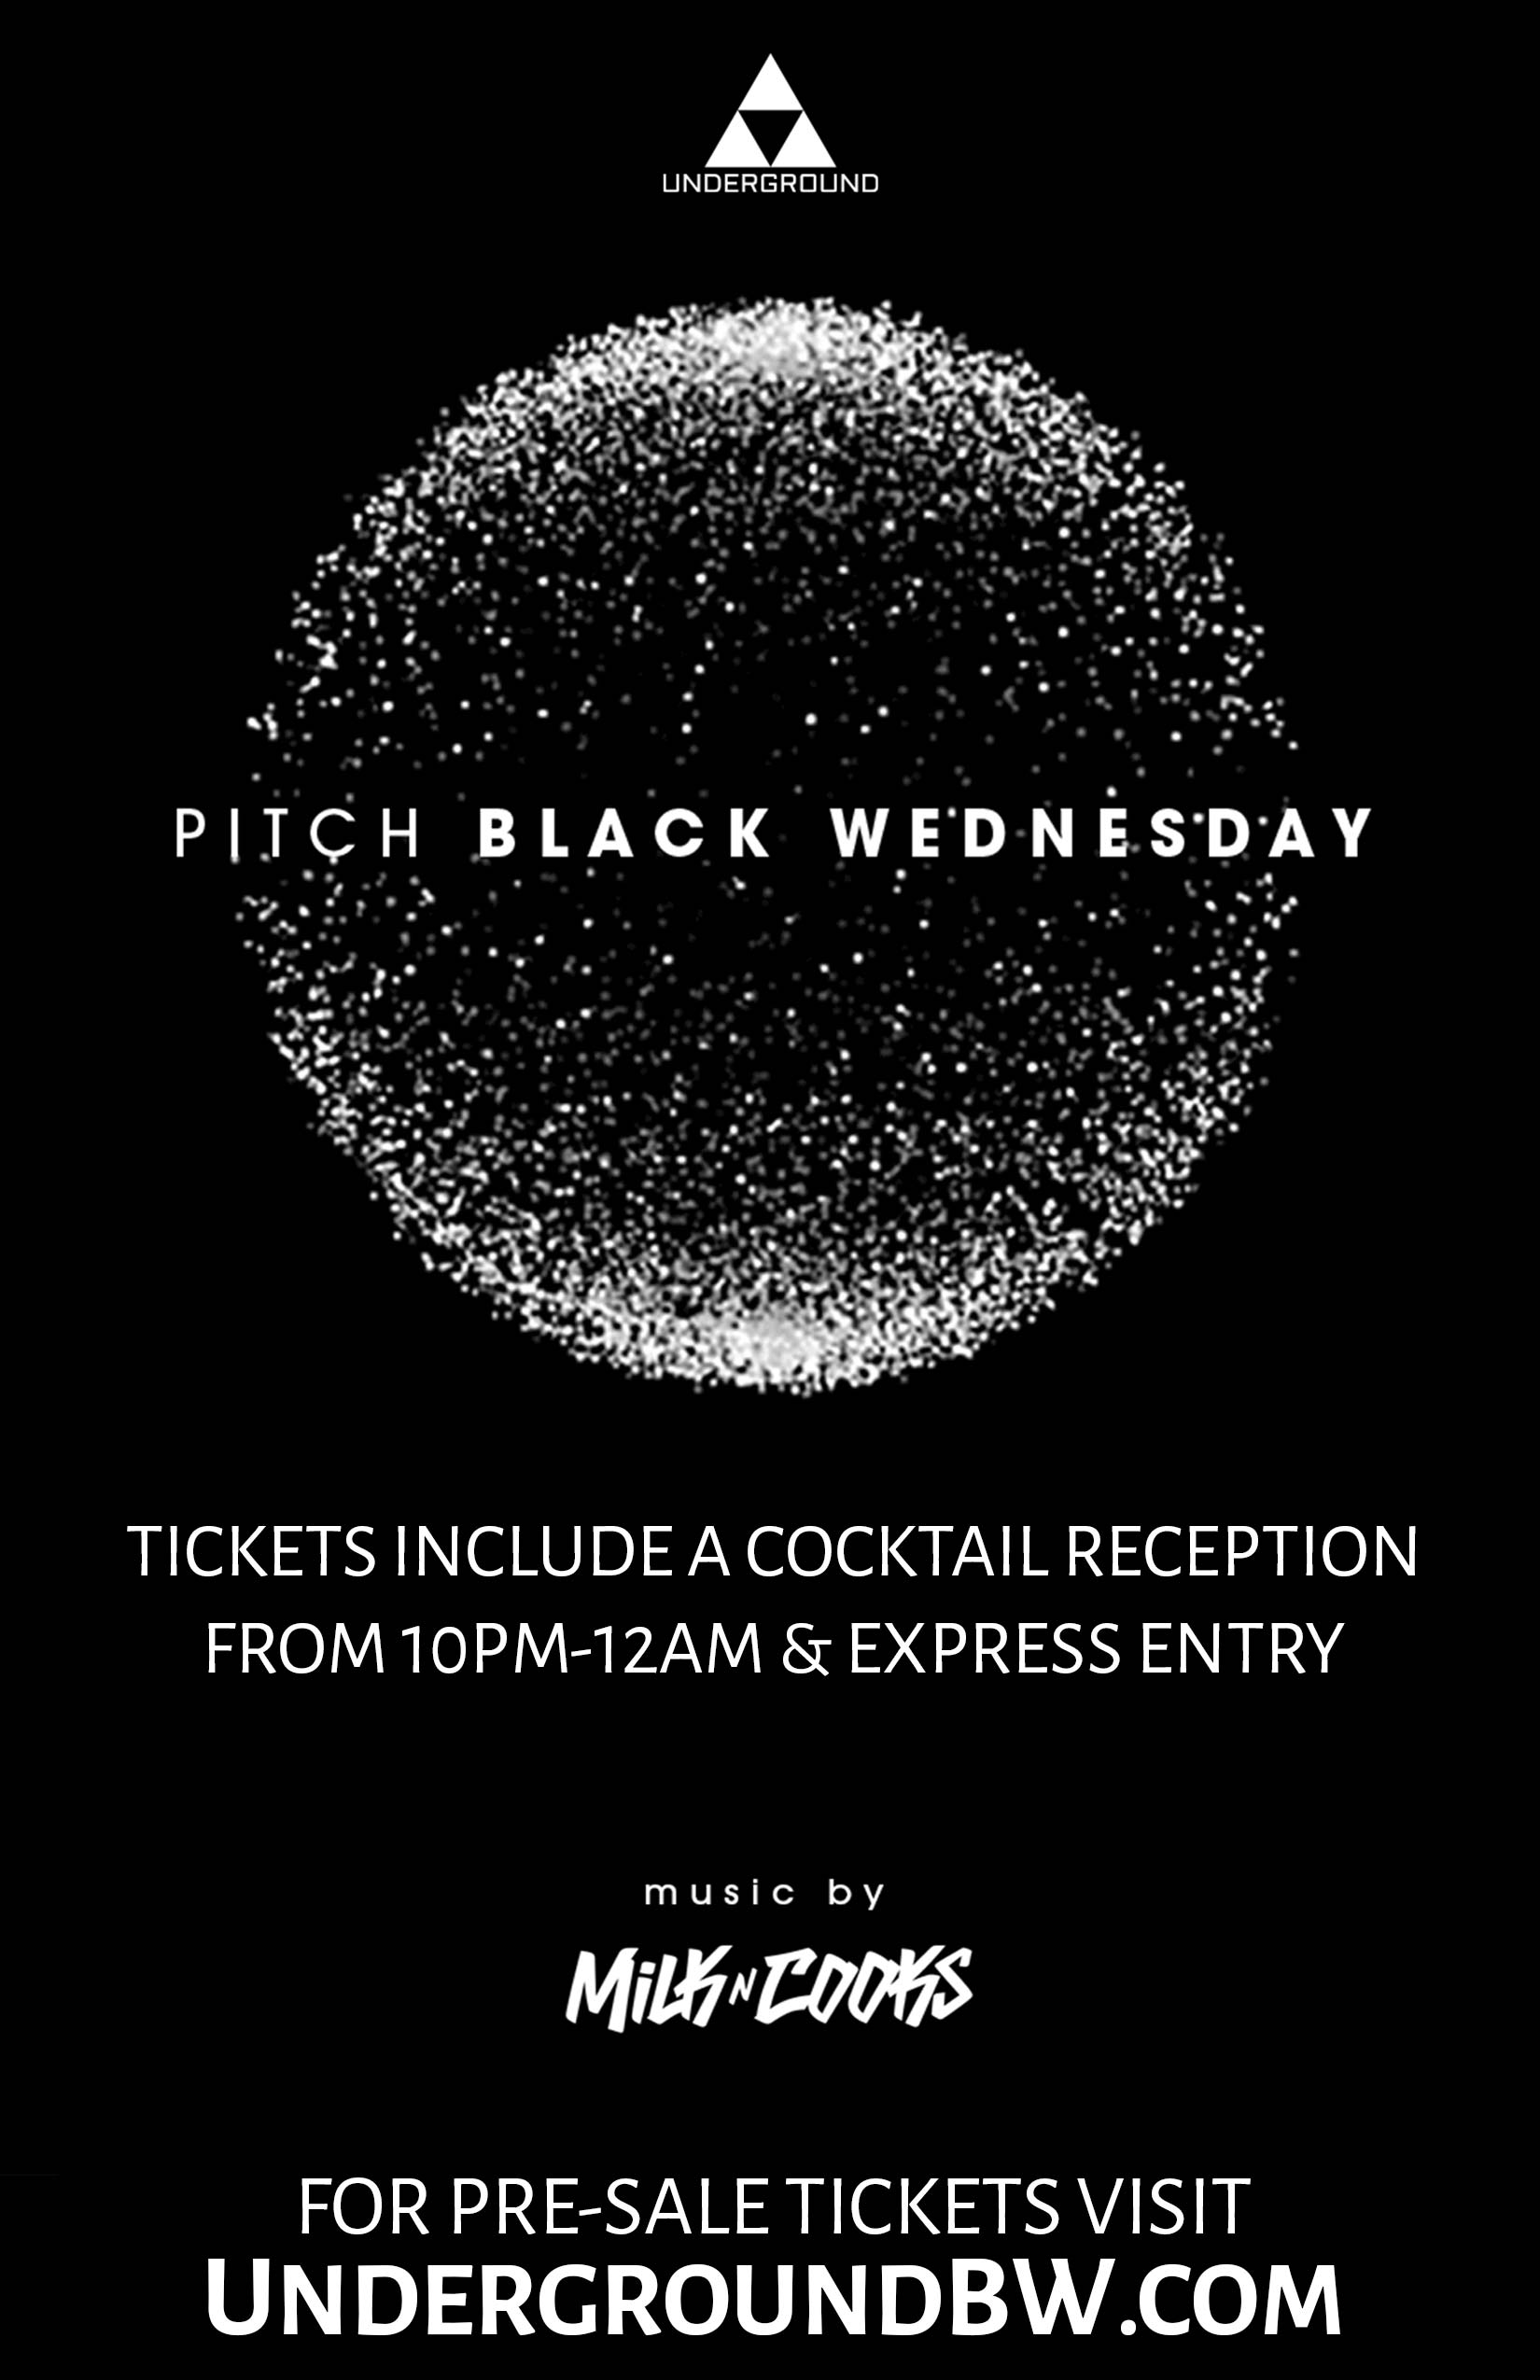 Underground Black Wednesday - Tickets Include Express Entry Before Midnight & A Cocktail Reception* From 10pm-12am